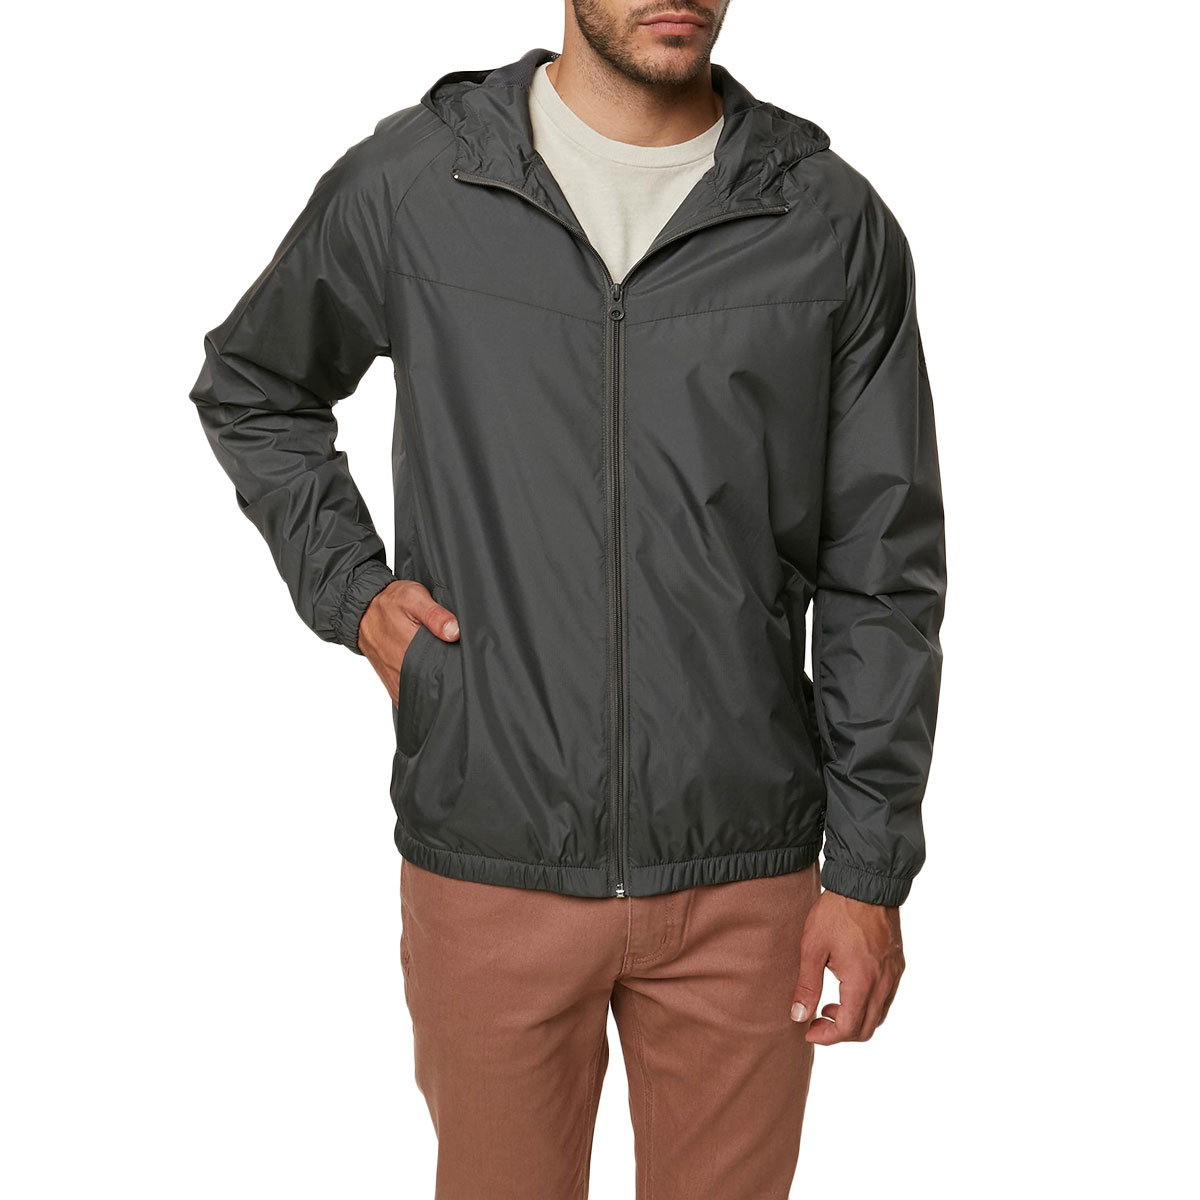 O'neill Guys' Traveler Windbreaker Jacket - Green, S